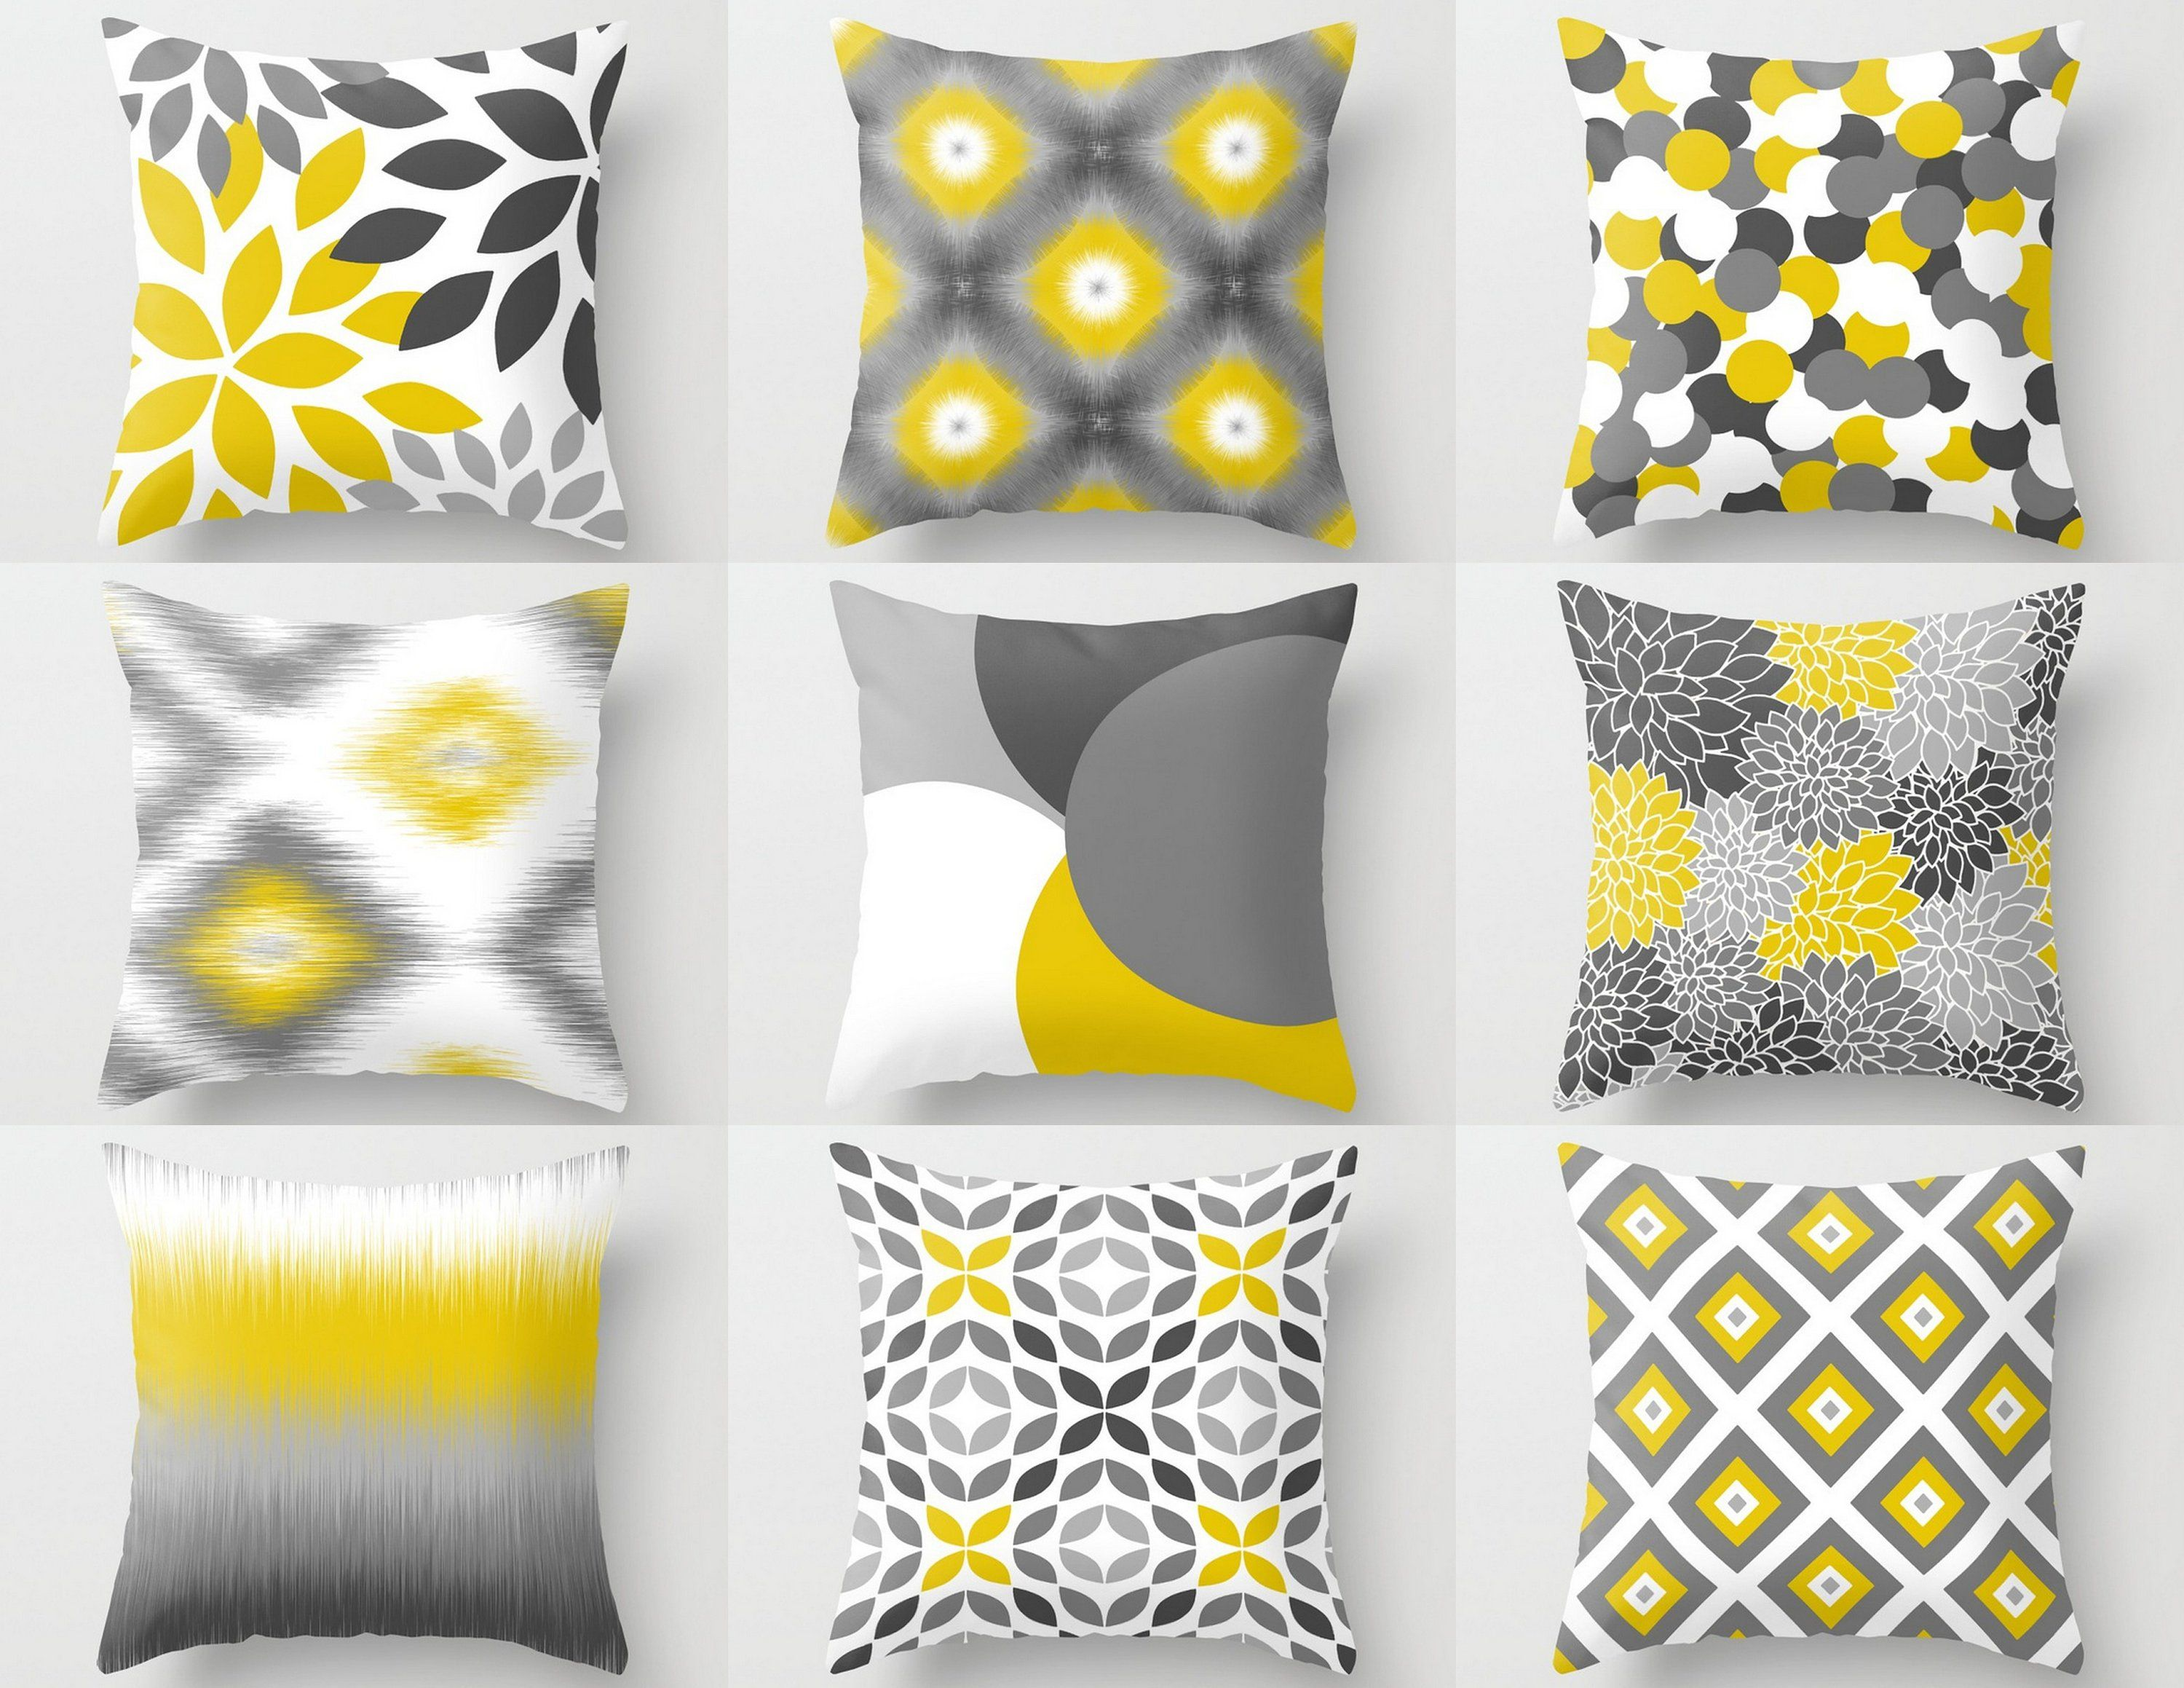 Hlbhomedesigns Yellow Decorative Pillows Couch Cushion Covers Living Room Decor Gray